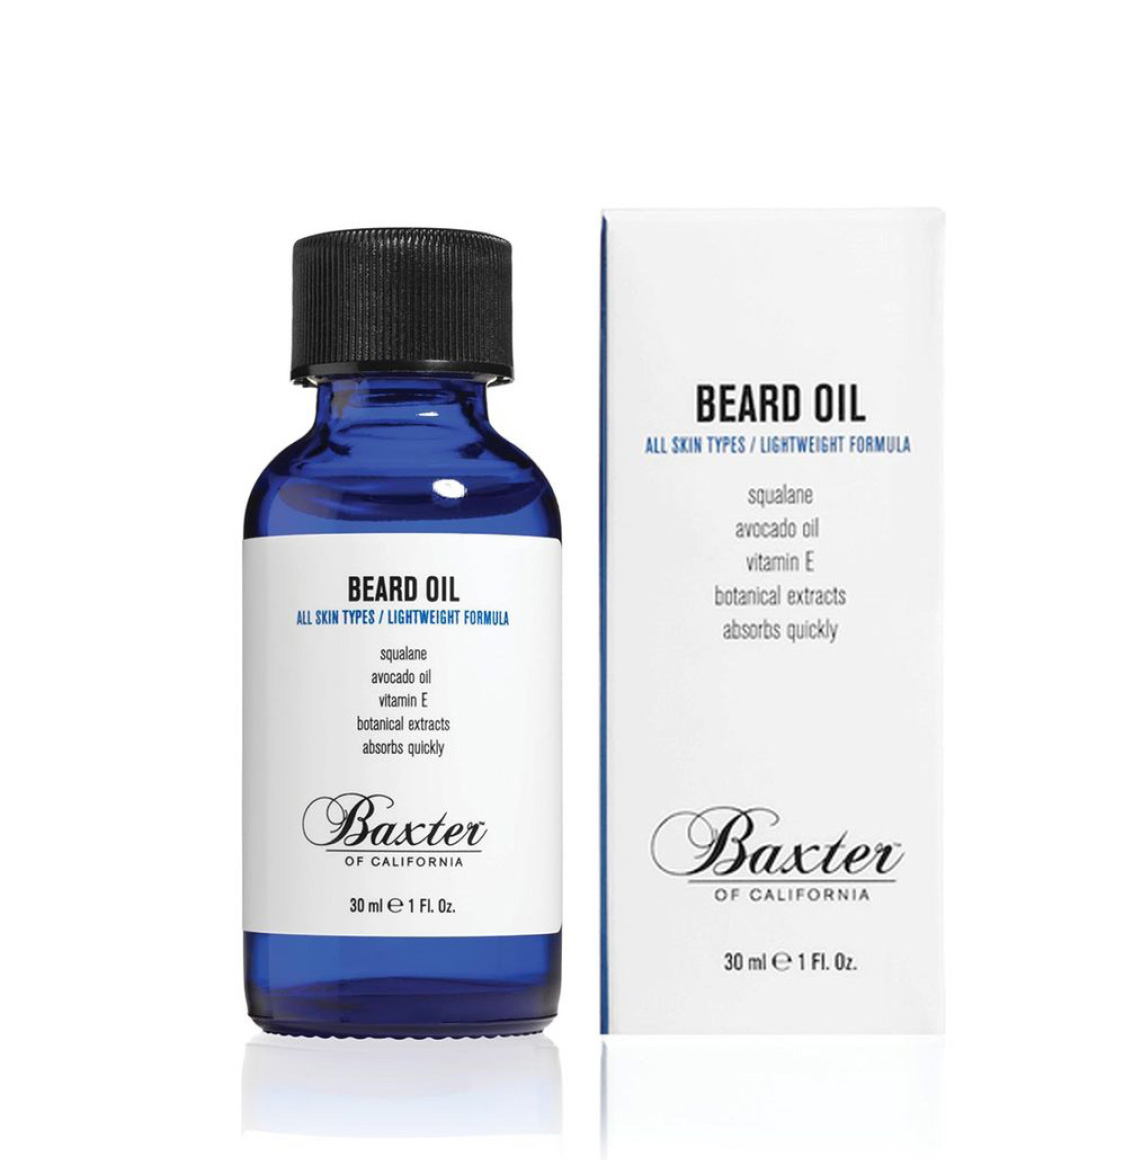 Baxter of California Beard Grooming Oil 30ml